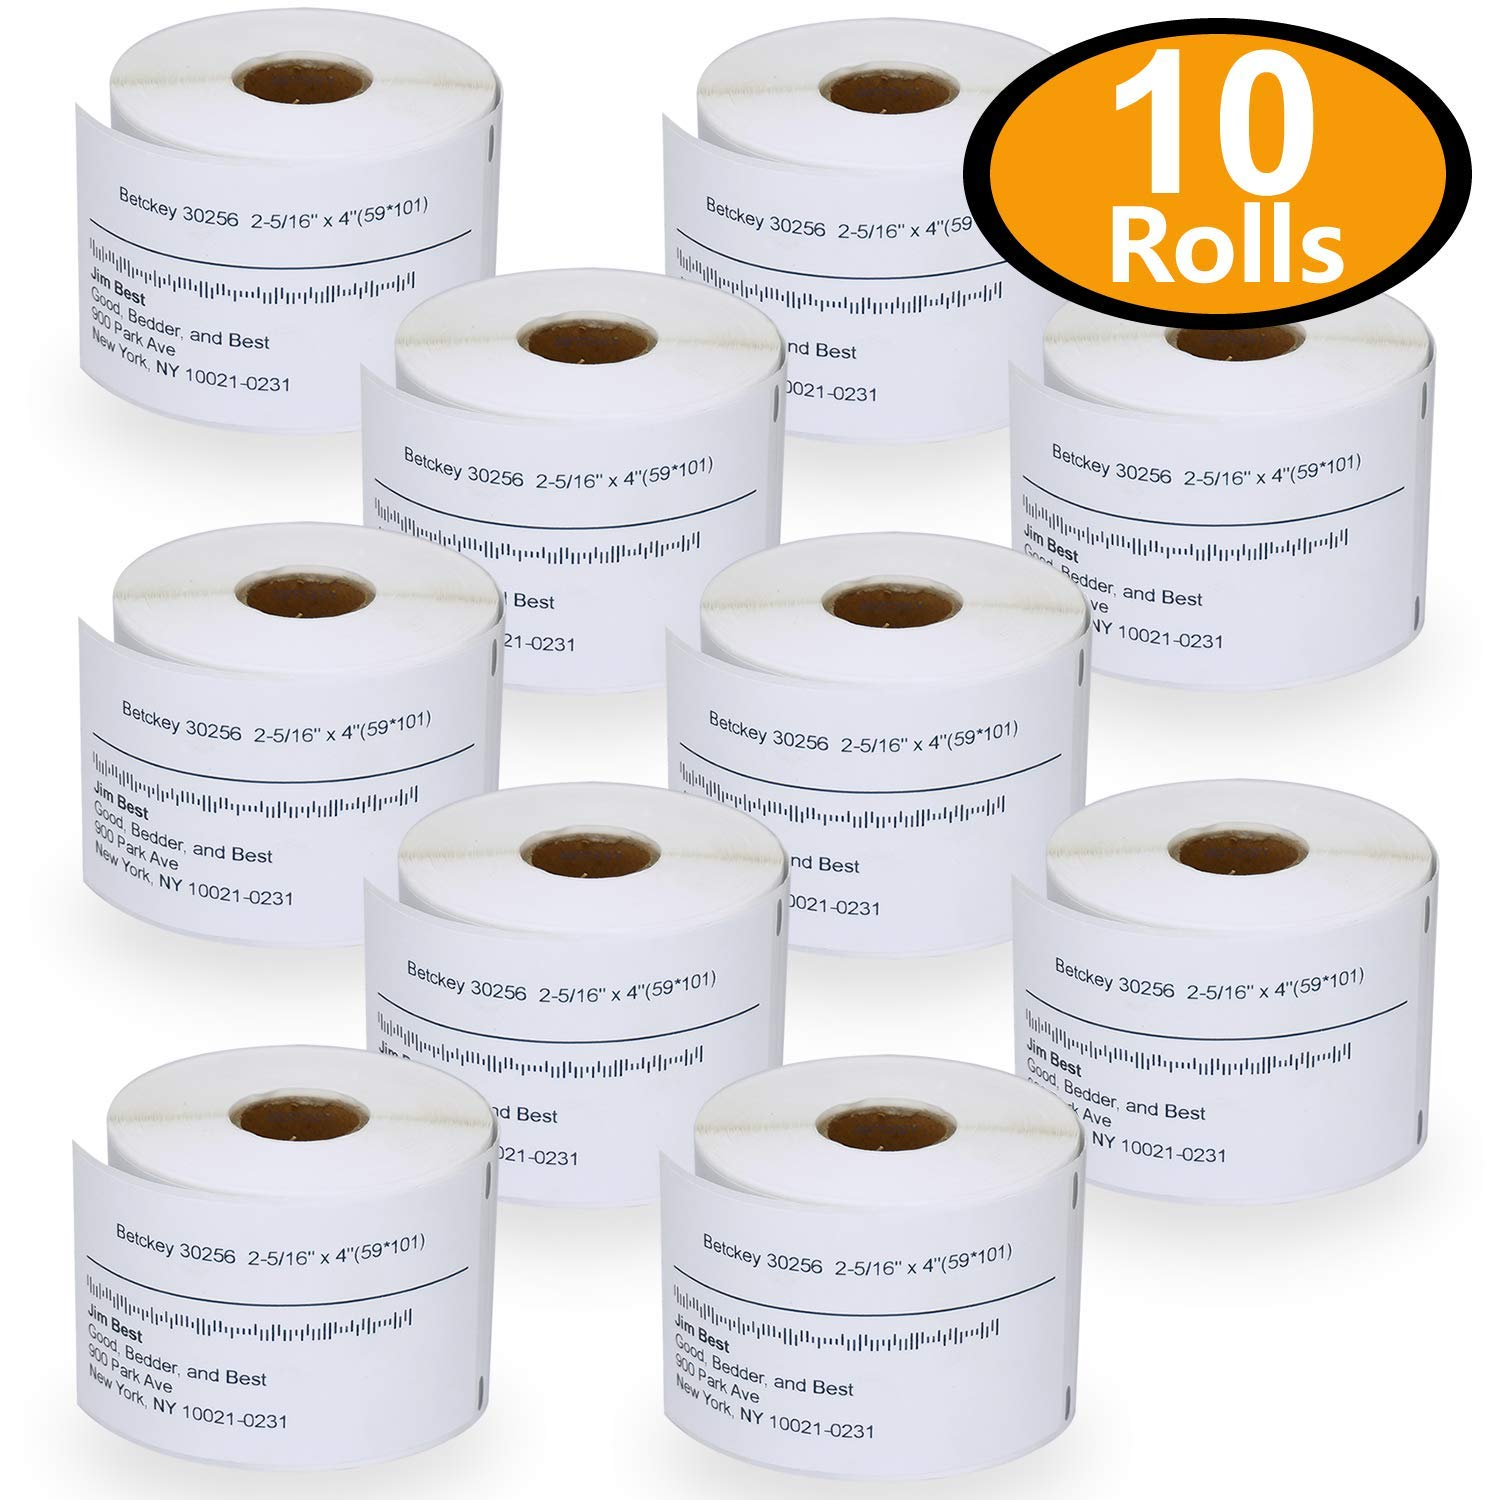 10 Rolls DYMO 30256 Compatible 2-5/16 x 4(59mm x 101mm) Large Shipping Labels, BPA Free BETCKEY DY30256-10